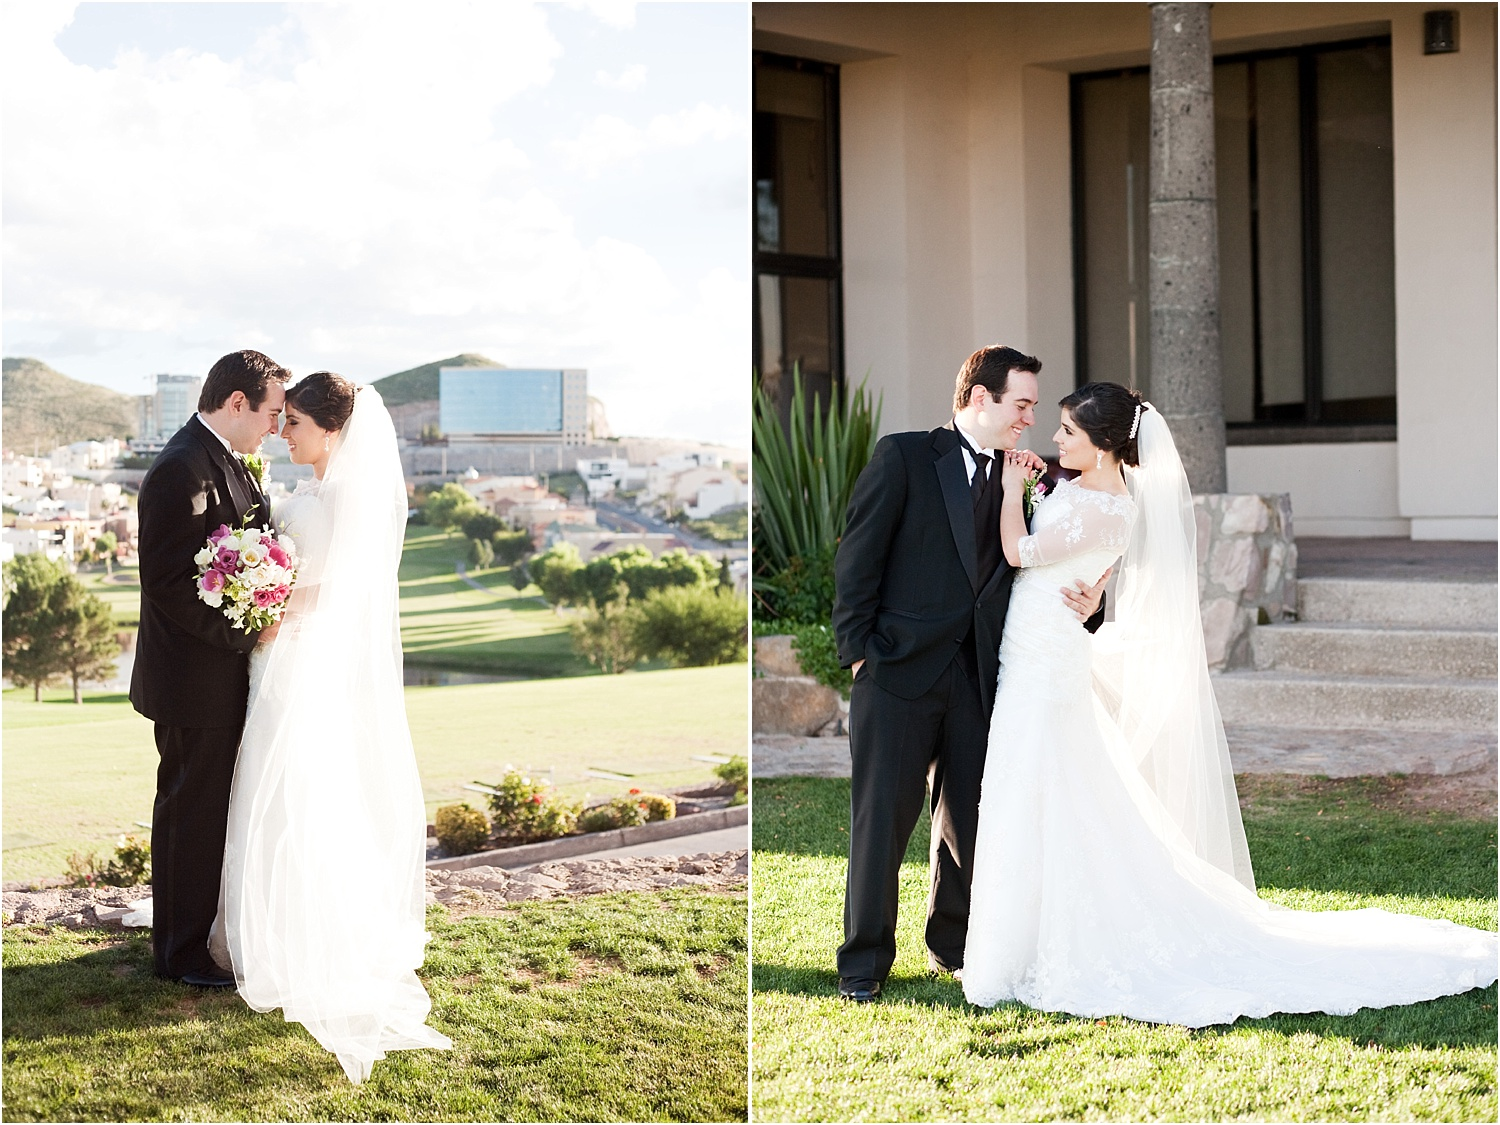 How to Create a Wedding Day Photography Timeline 10